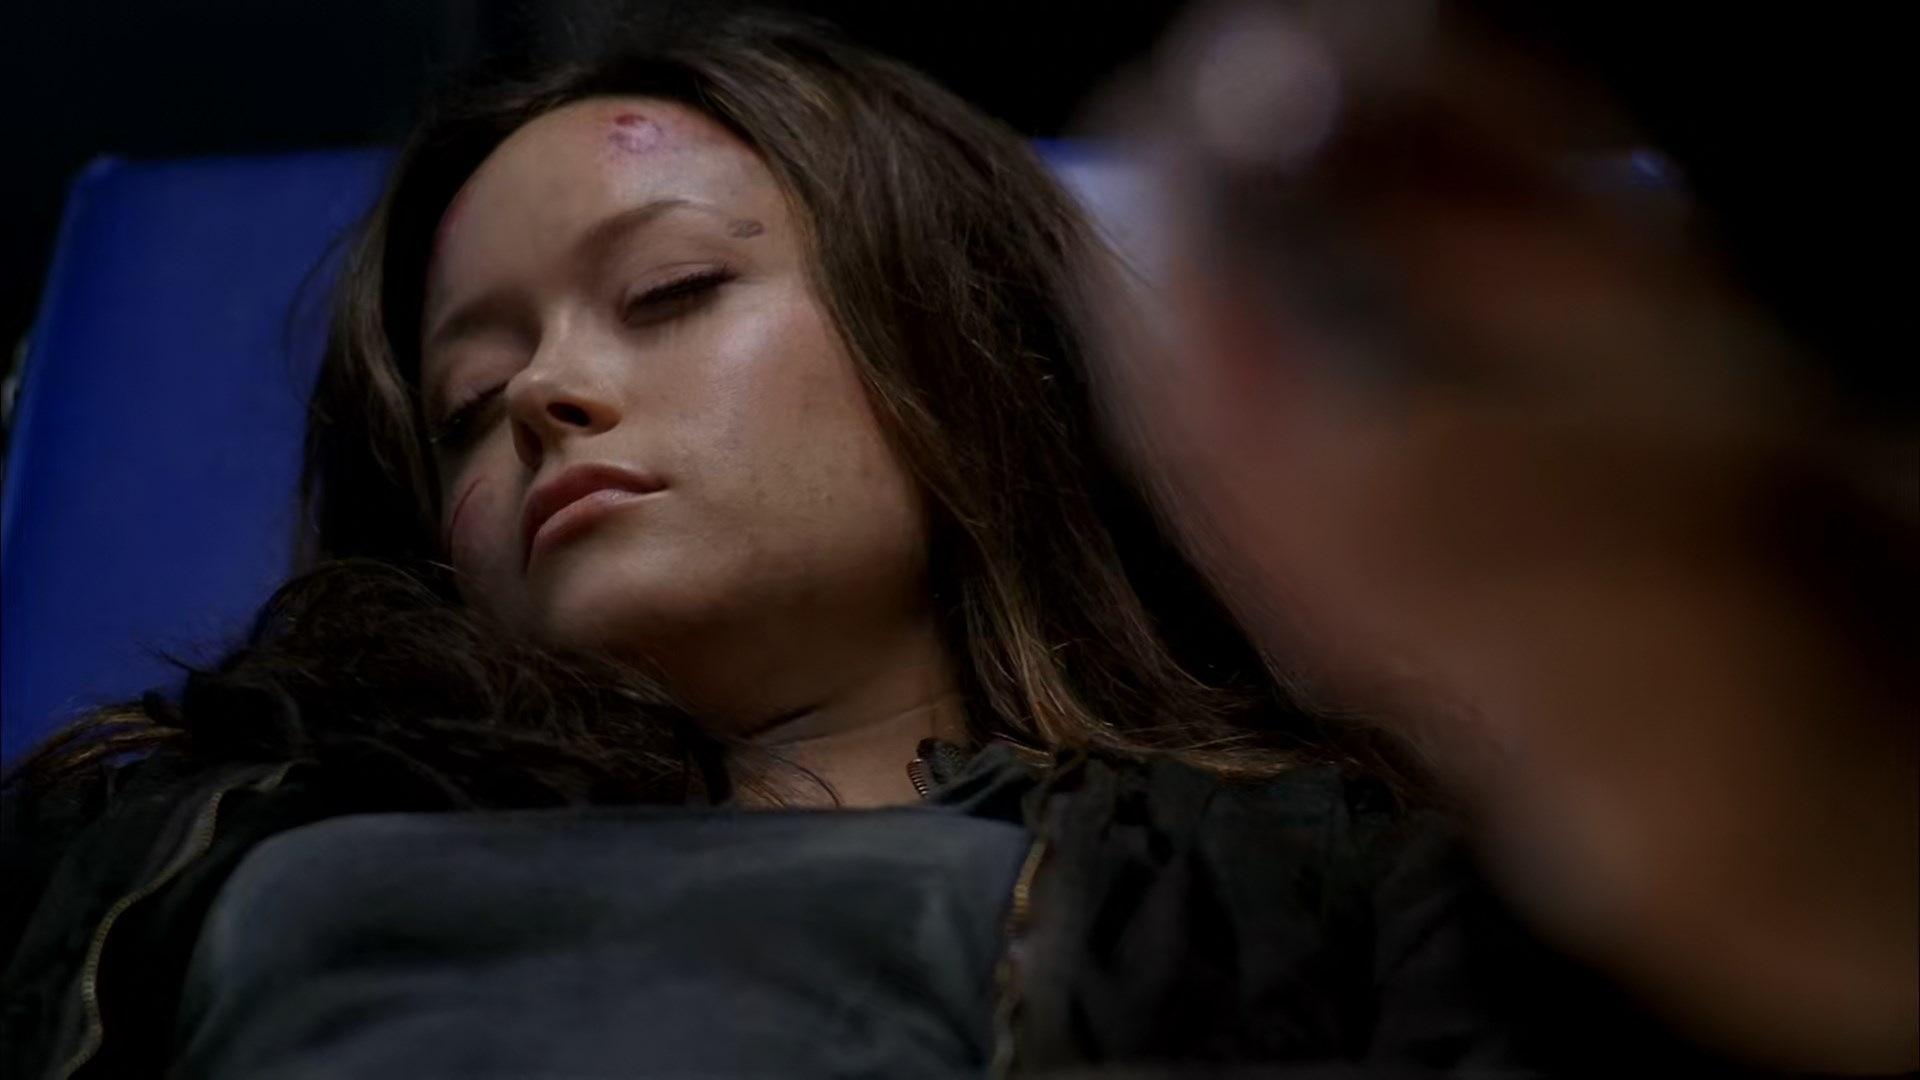 Asian on sarah connor chronicles - Adult gallery